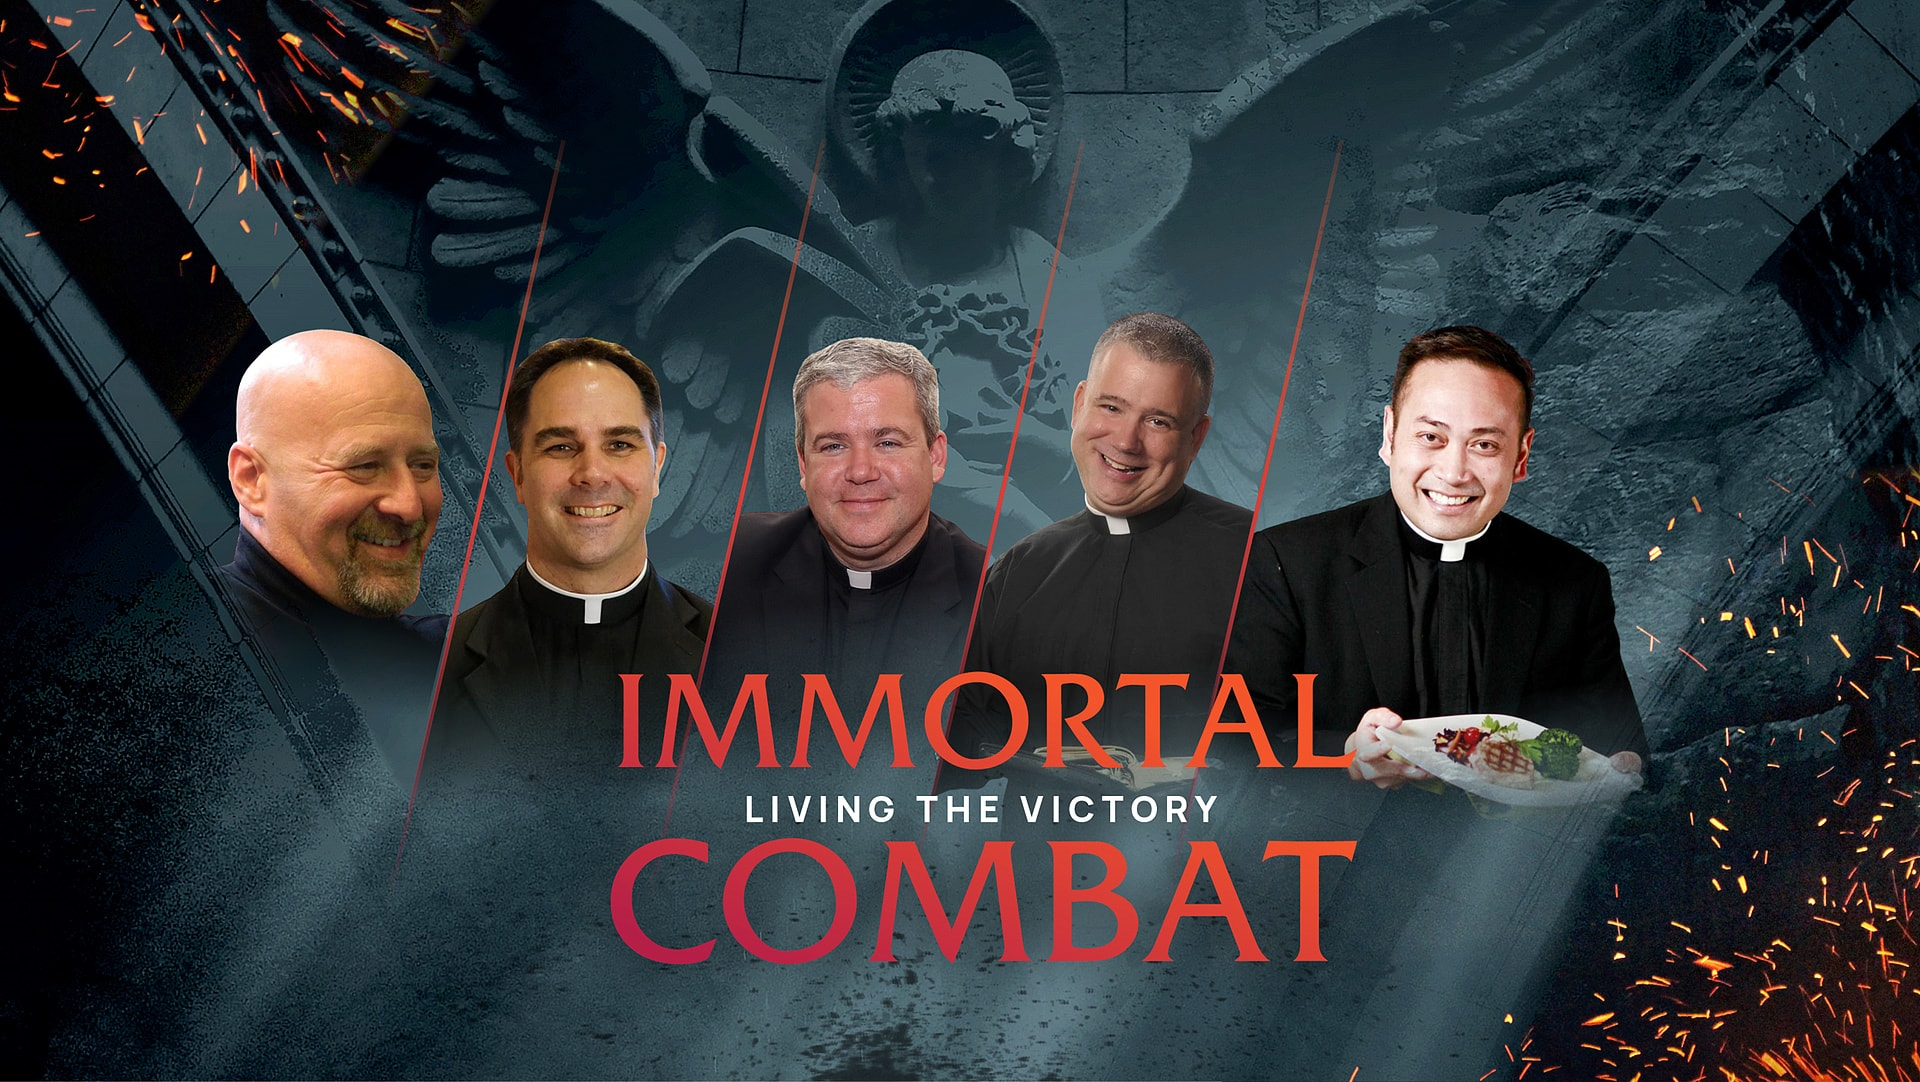 Meet the Priests of Immortal Combat